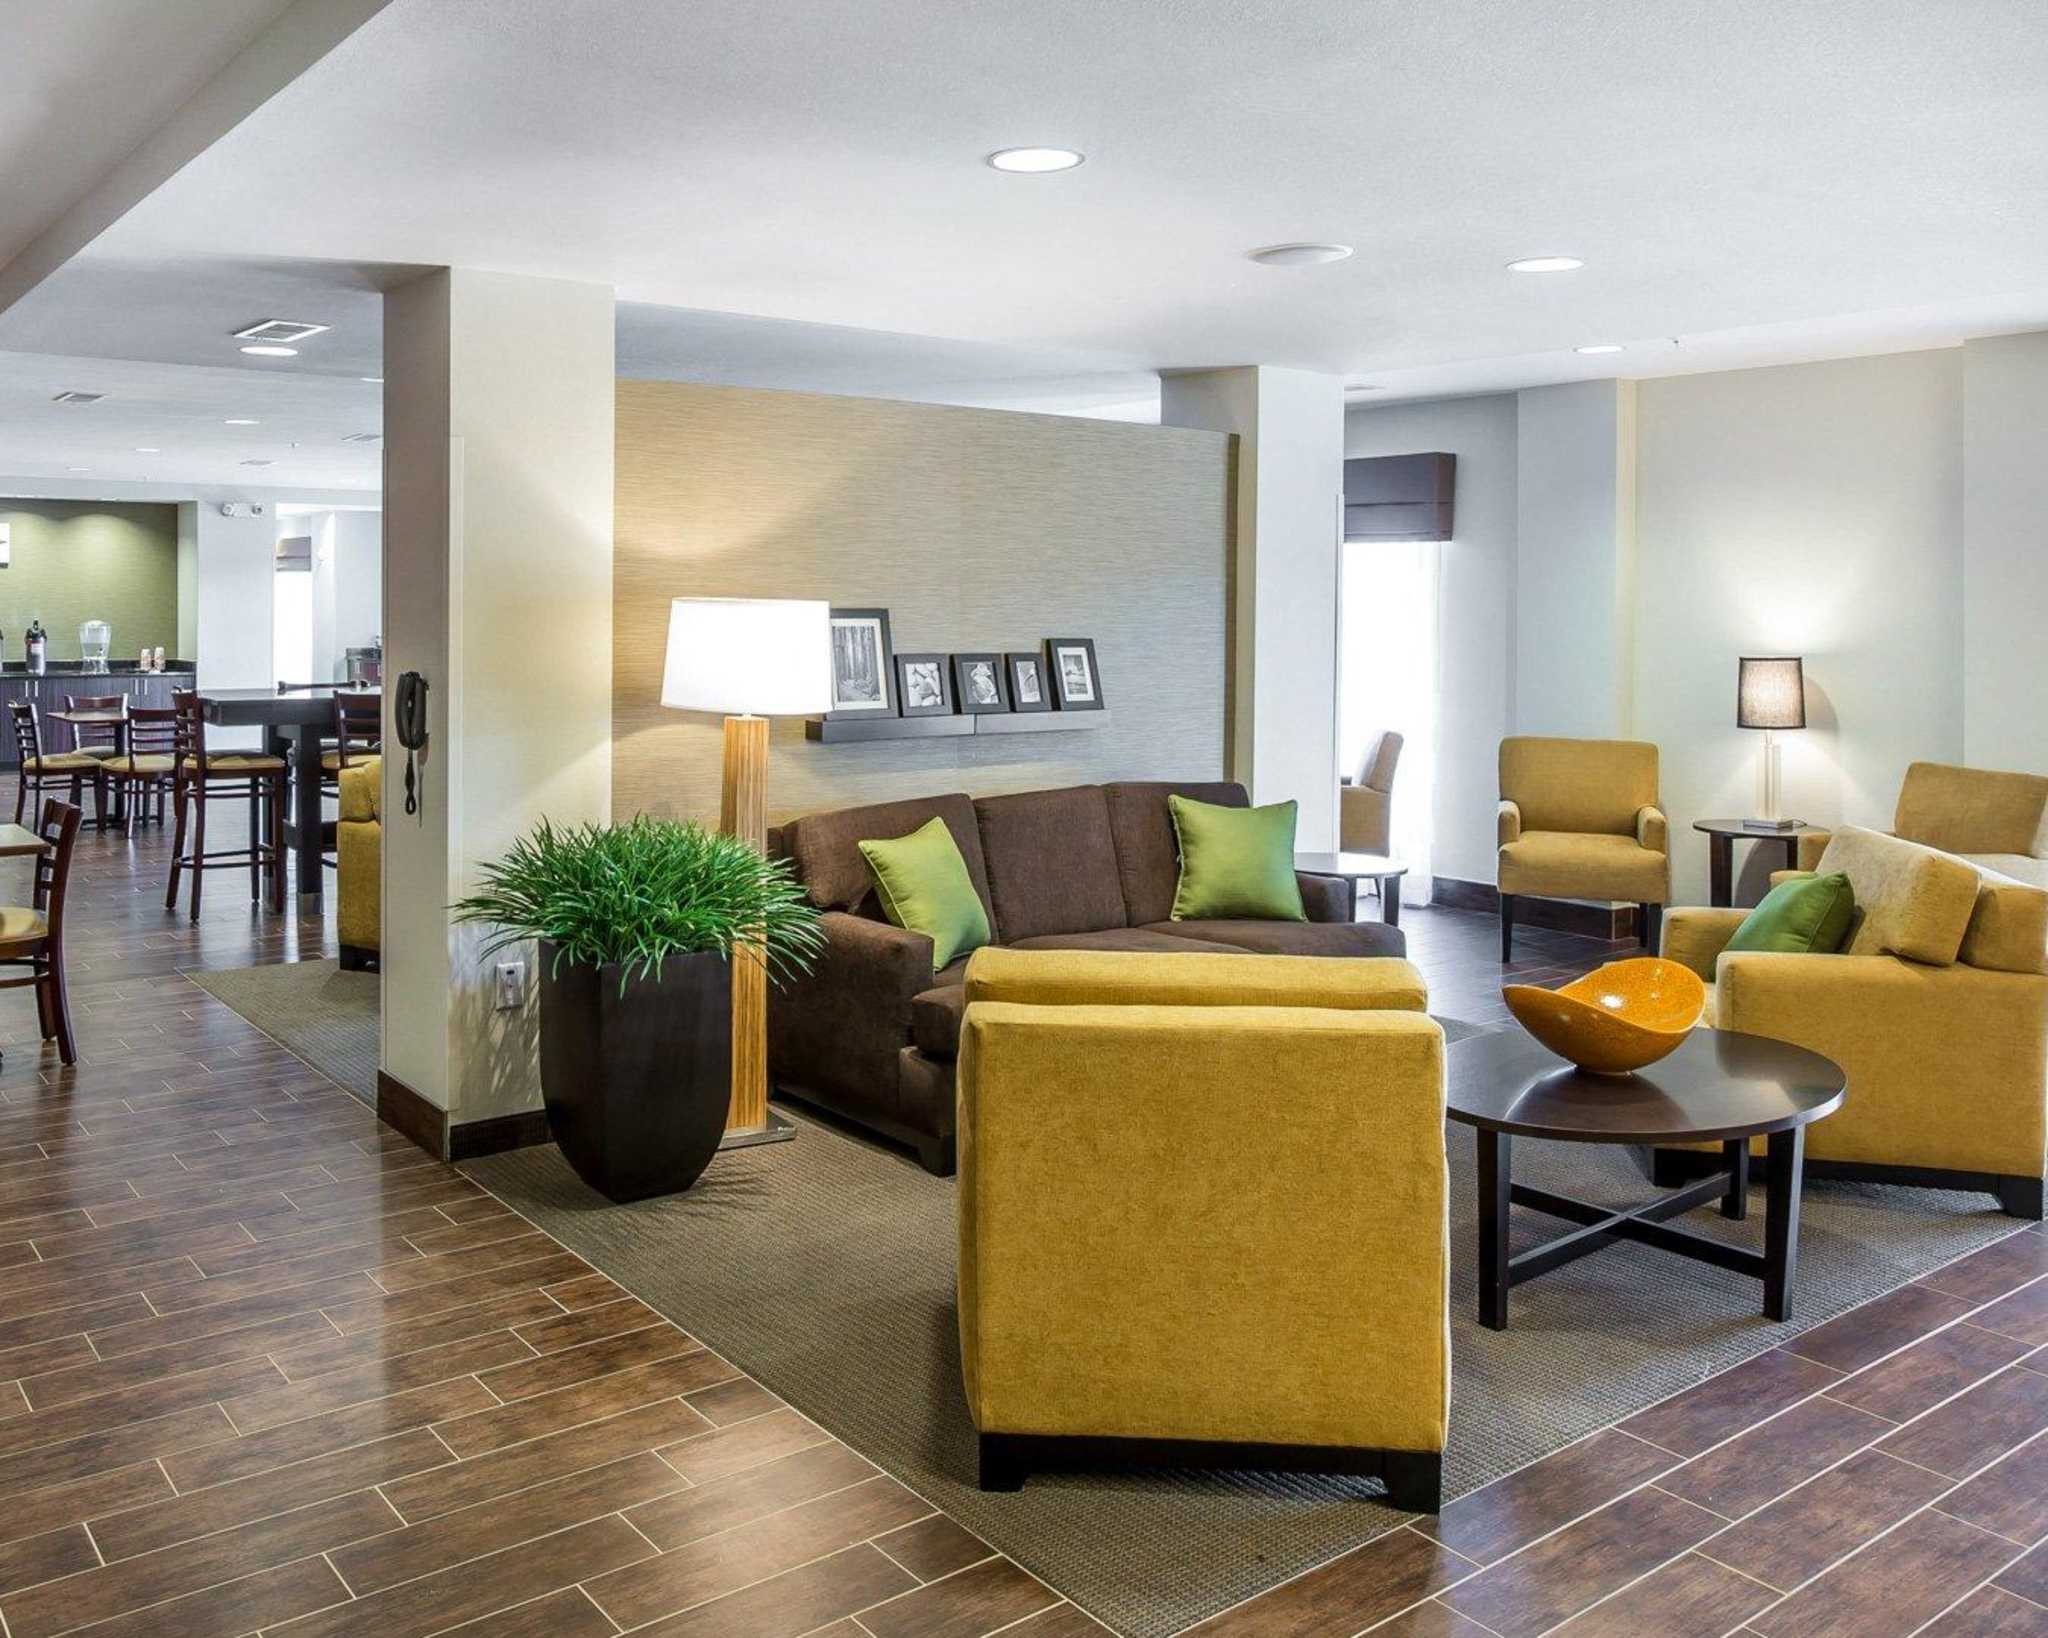 MainStay Suites Cartersville - Emerson Lake Point image 8